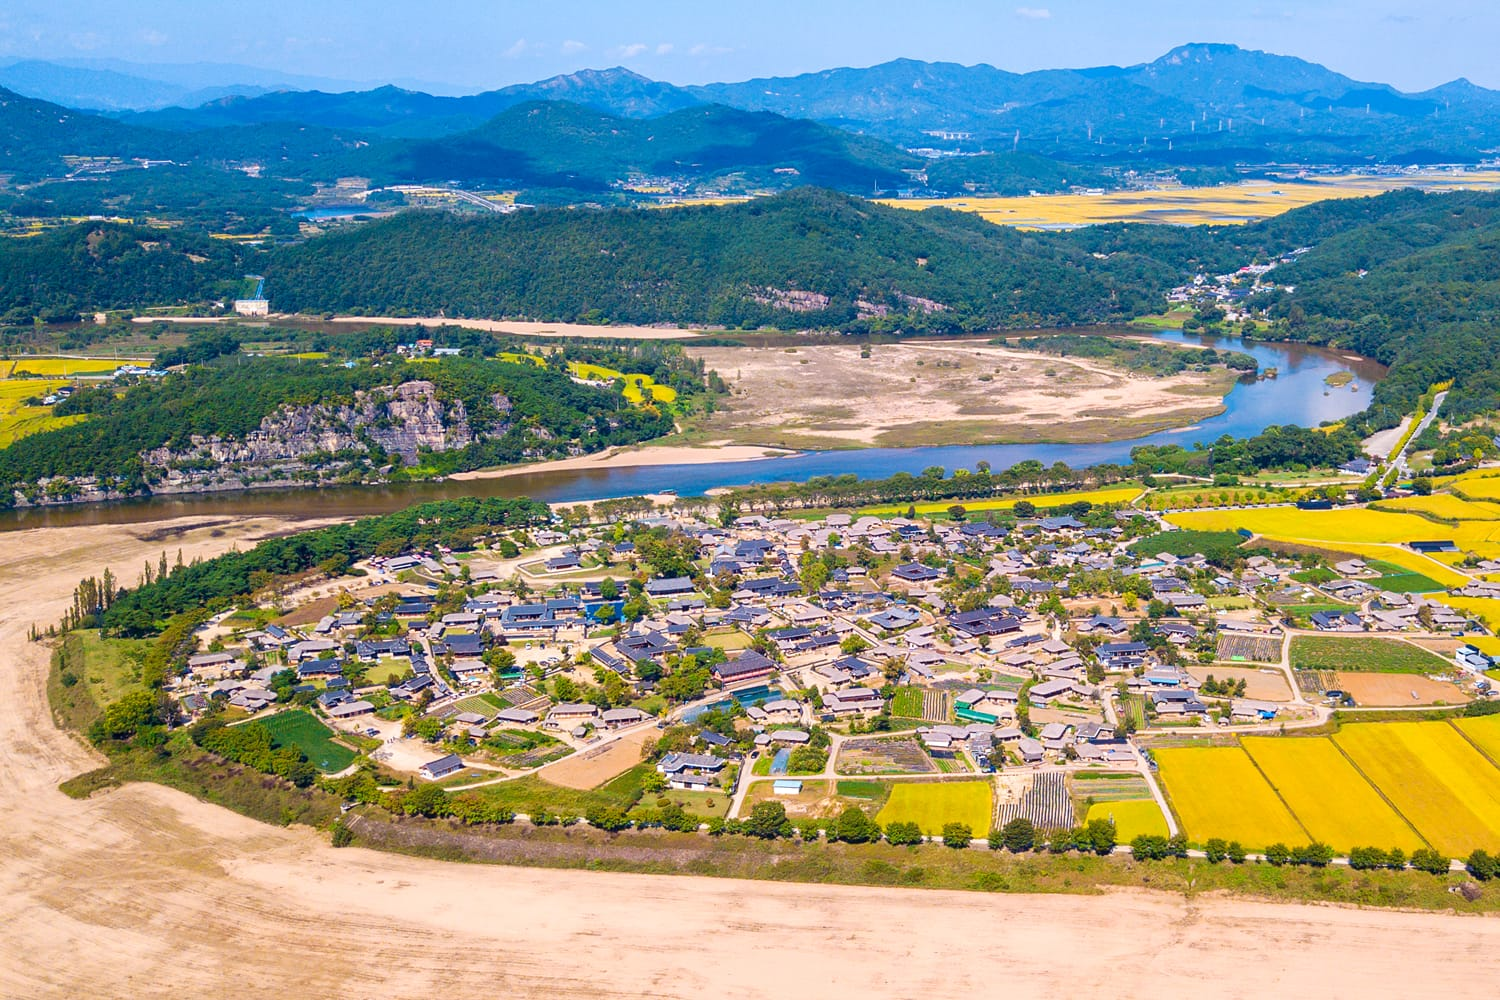 Aerial view of Andong, Hahoe Village in South Korea